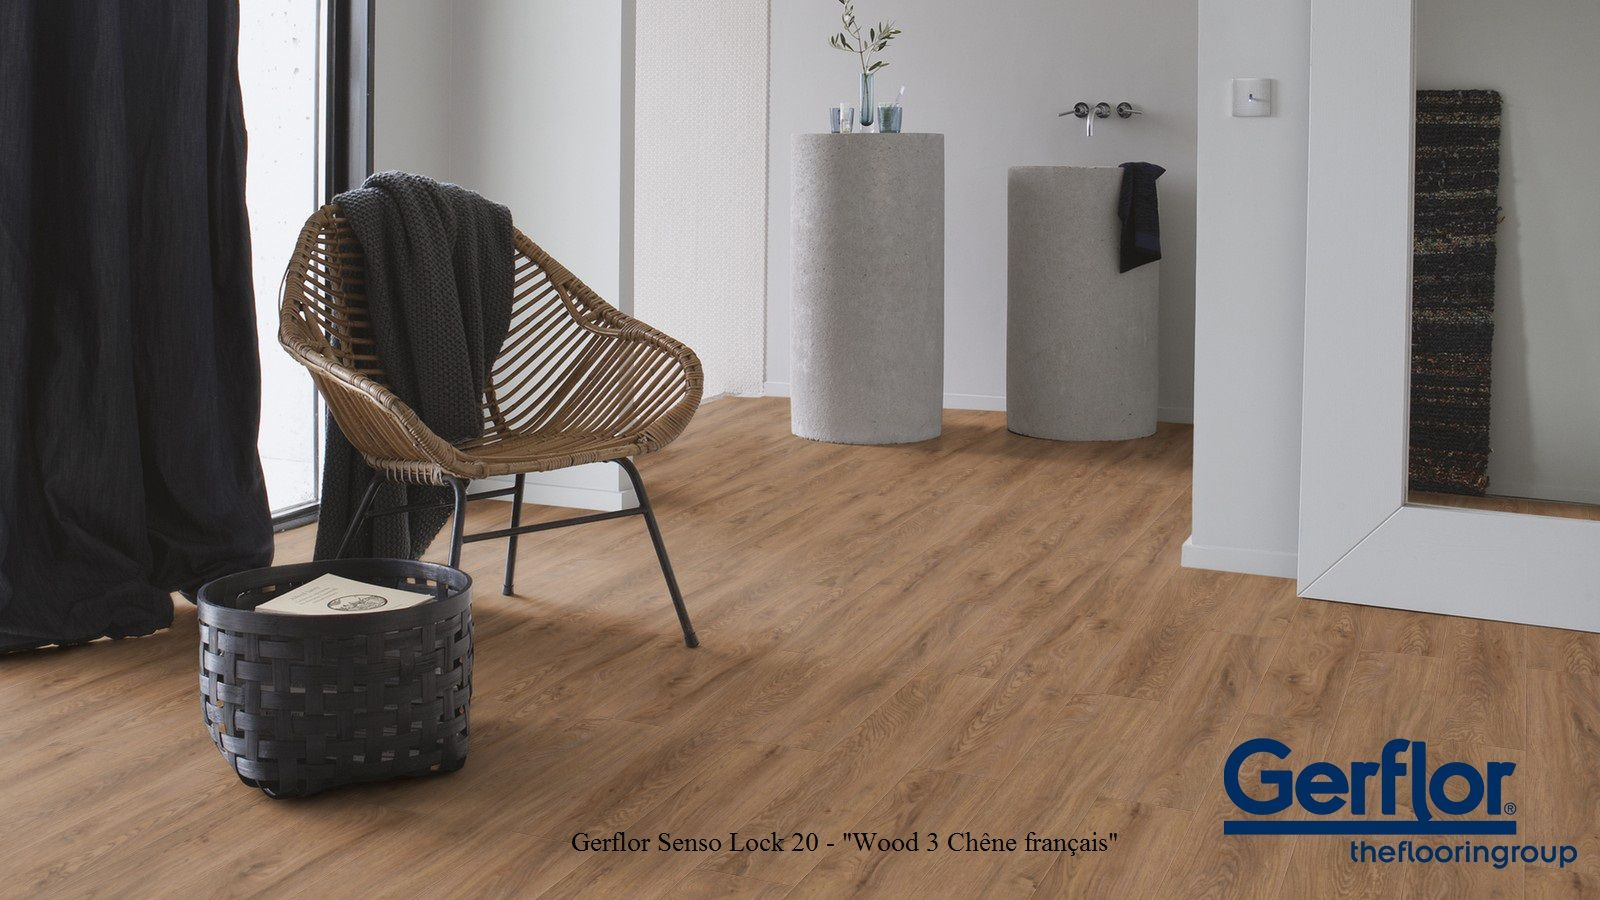 Lame Vinyle Clipsable Gerflor Senso Lock 20 Quot0676 Wood 3 Chêne Français Quot Pinterest